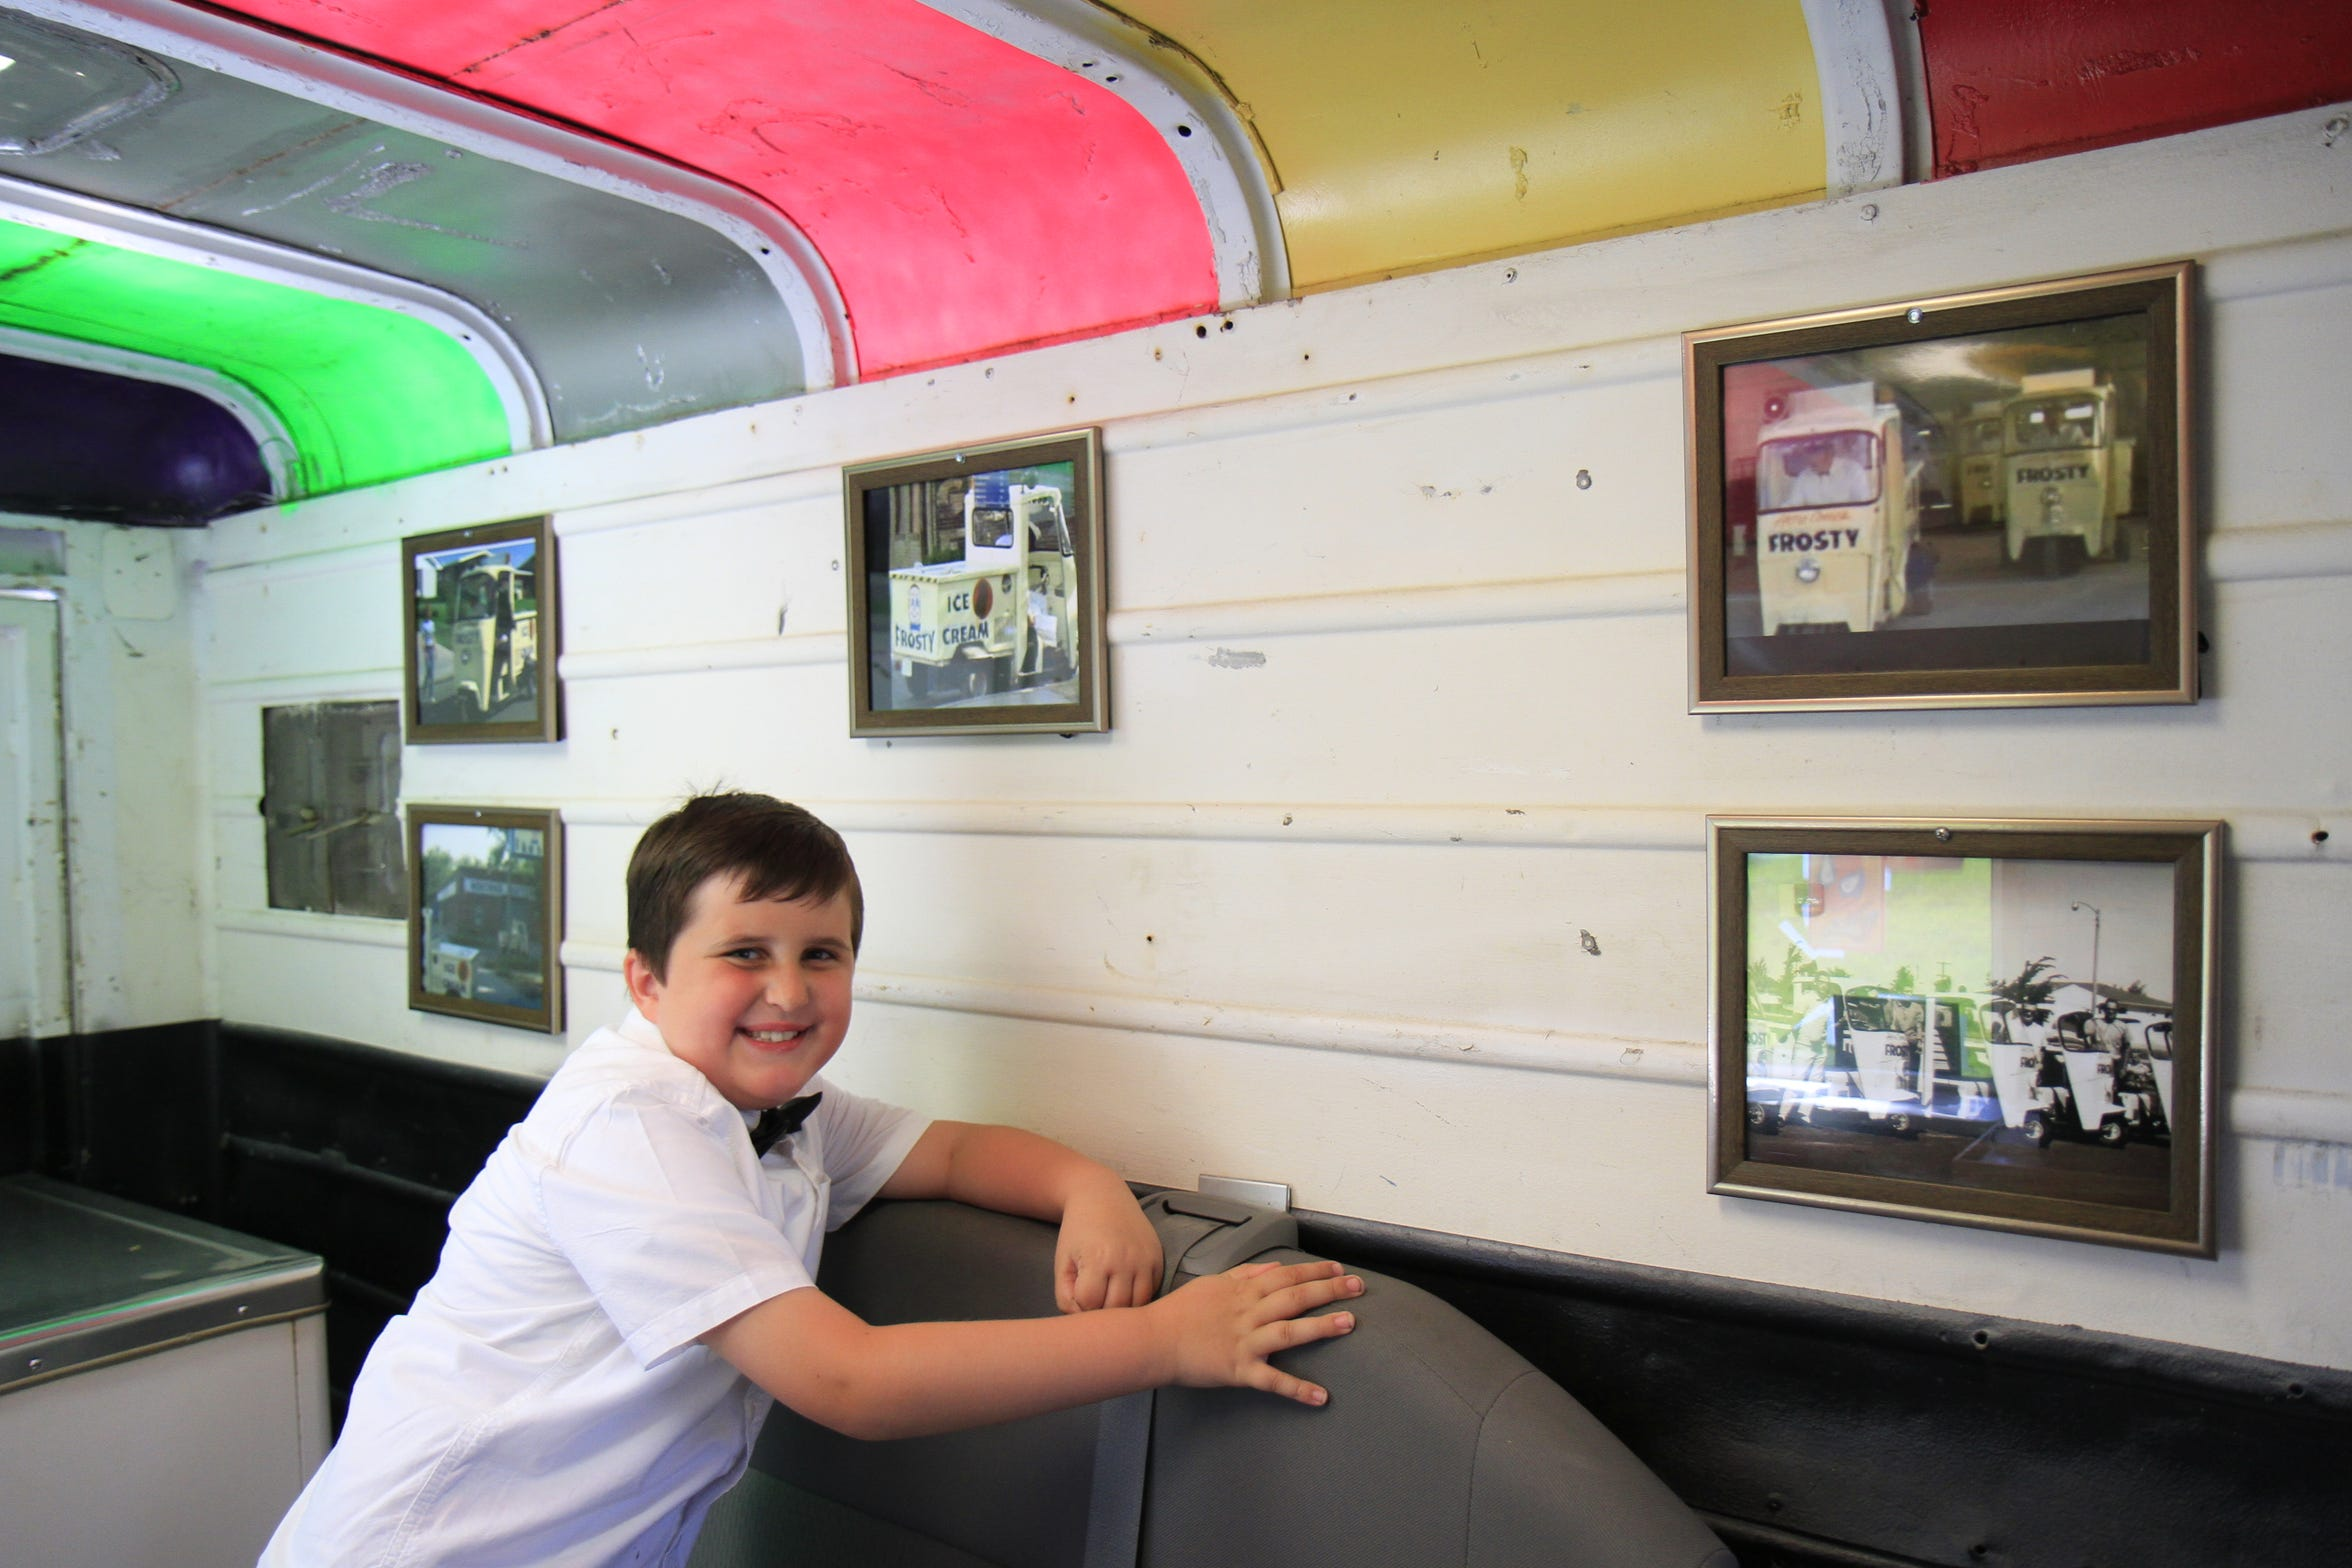 Benjamin Brown posing next to the photos of the original Frosty trucks inside the truck